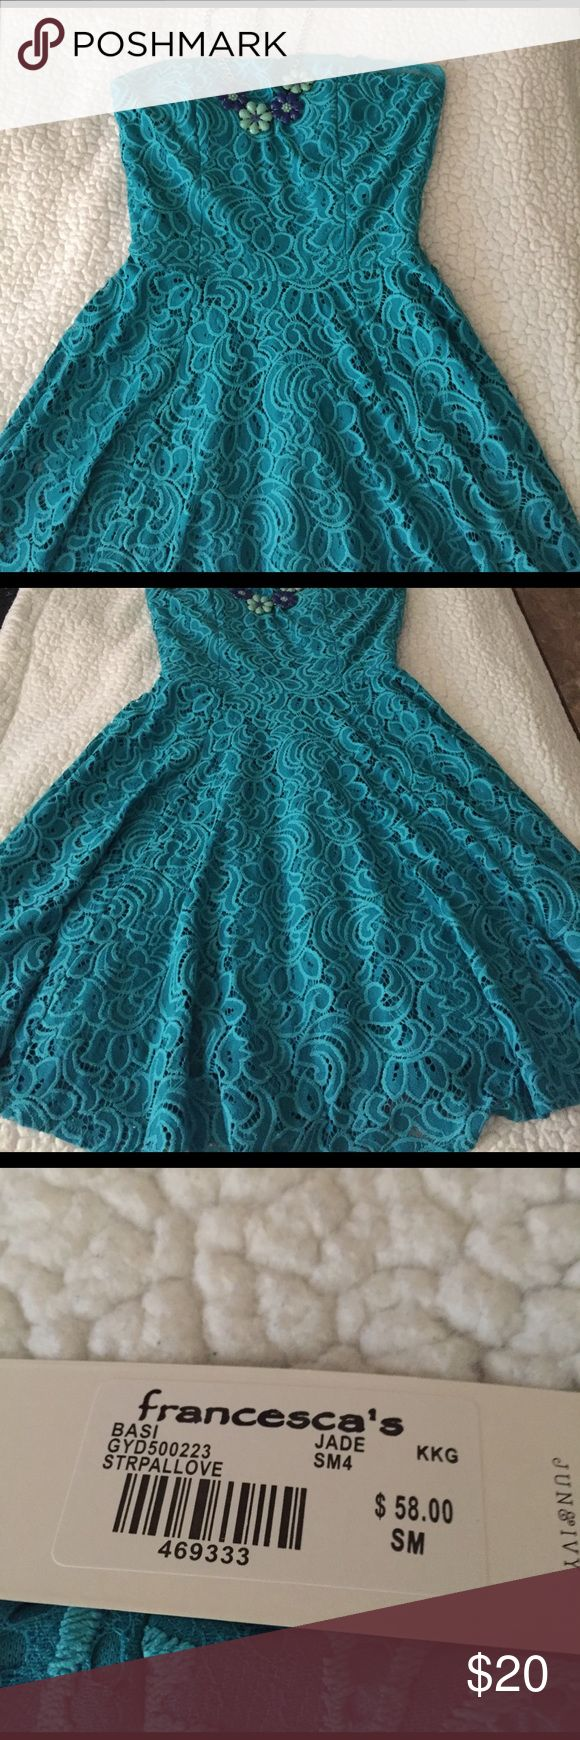 Aqua color dress 👗 Gorgeous embroidered dress! New with tags! Perfect dress for spring. 🌸🌺🌹 Francesca's Collections Dresses Midi